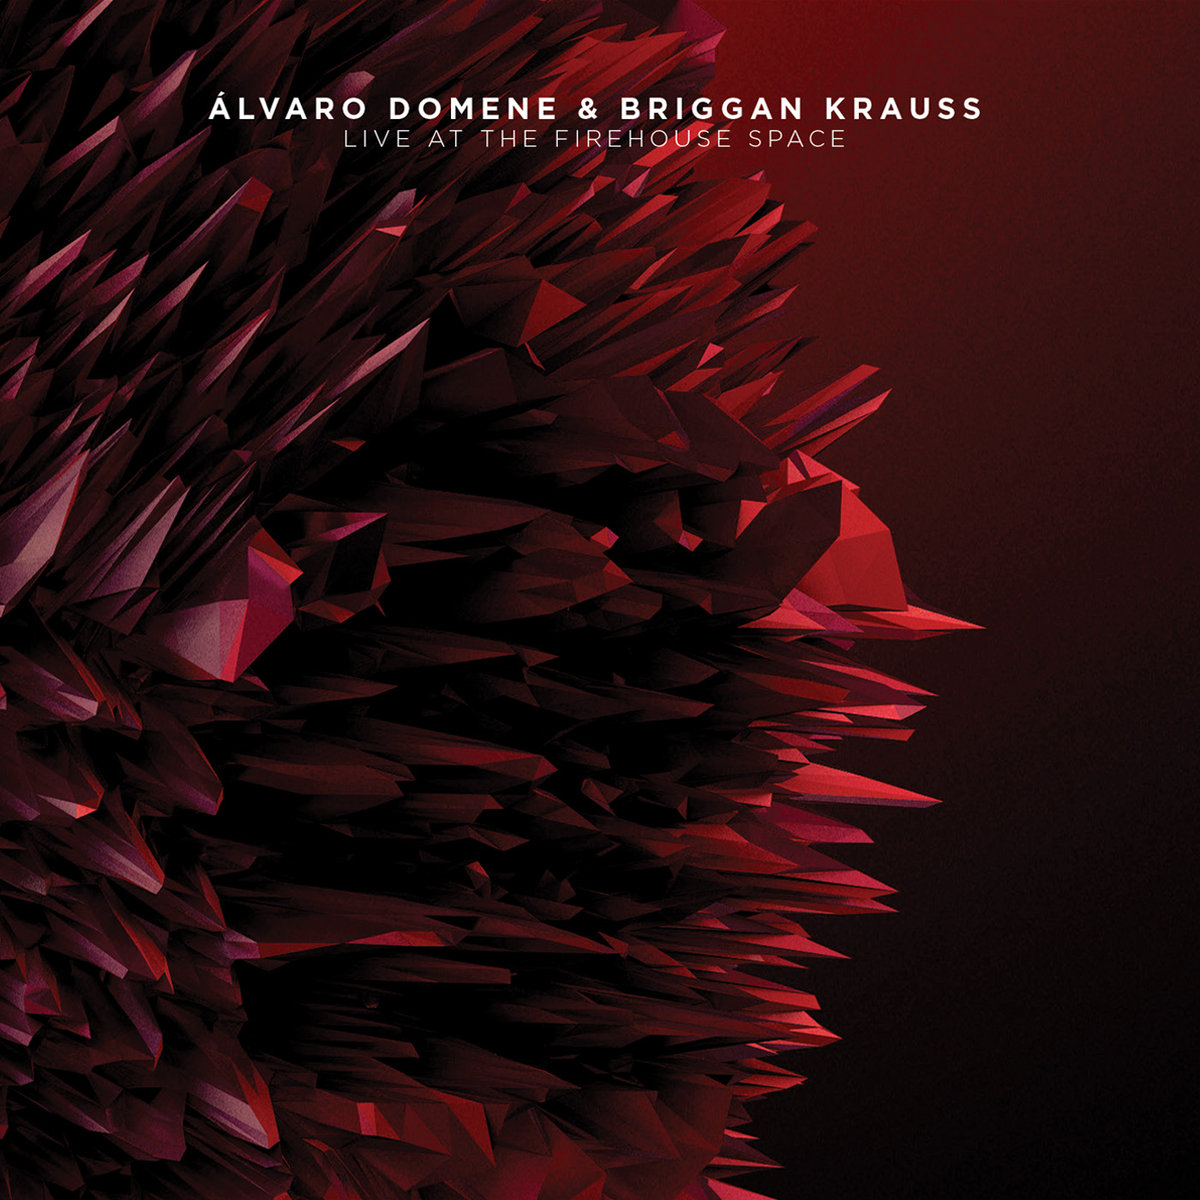 Live at The Firehouse Space by Álvaro Domene & Briggan Krauss